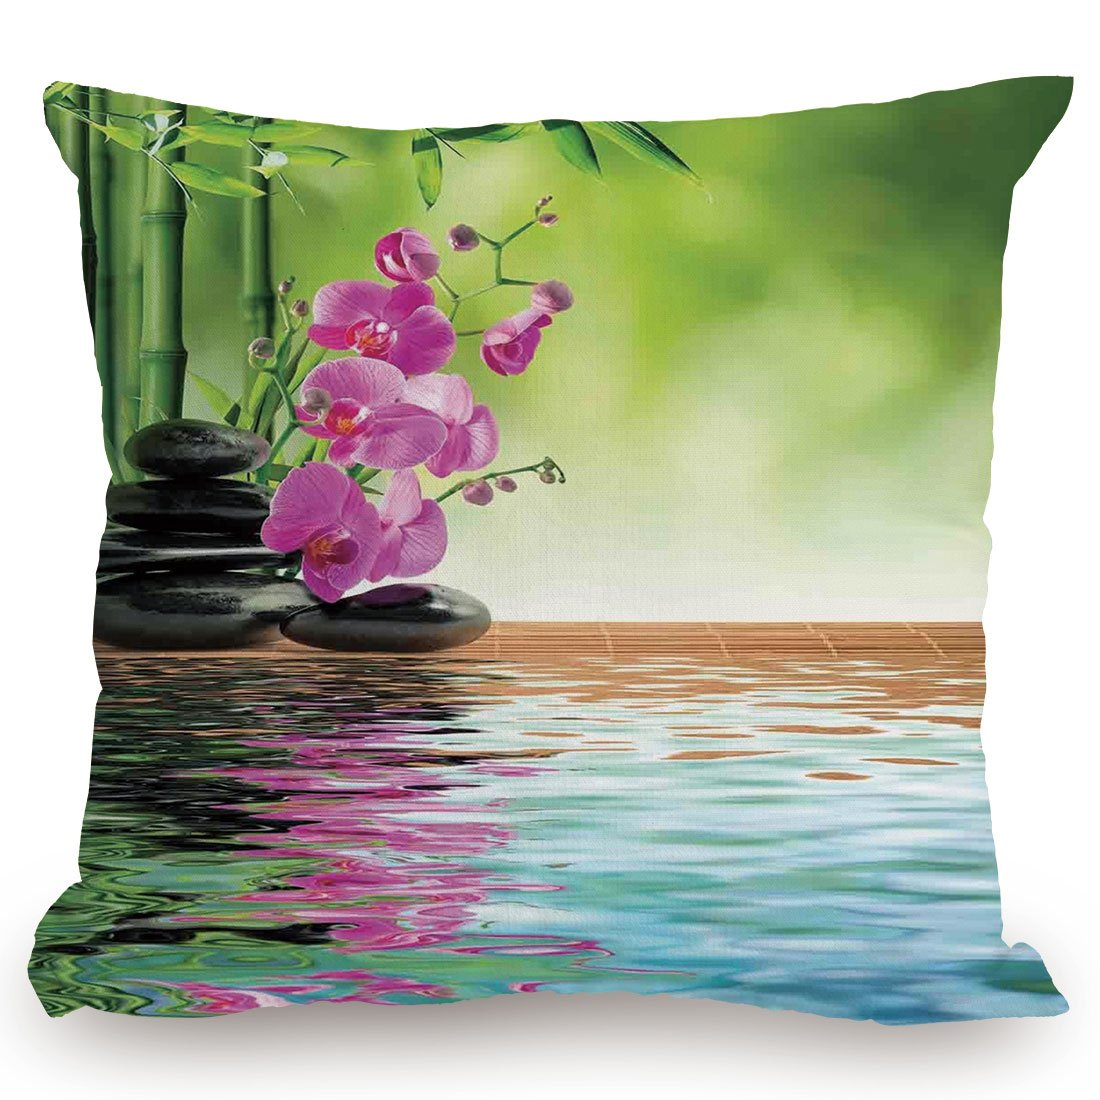 KissCase Throw Pillow Cushion Cover,Spa Decor,Orchid Flower Stone Oriental Culture Spirituality Wellness Tropical Holiday,Decorative Square Accent Pillow Case